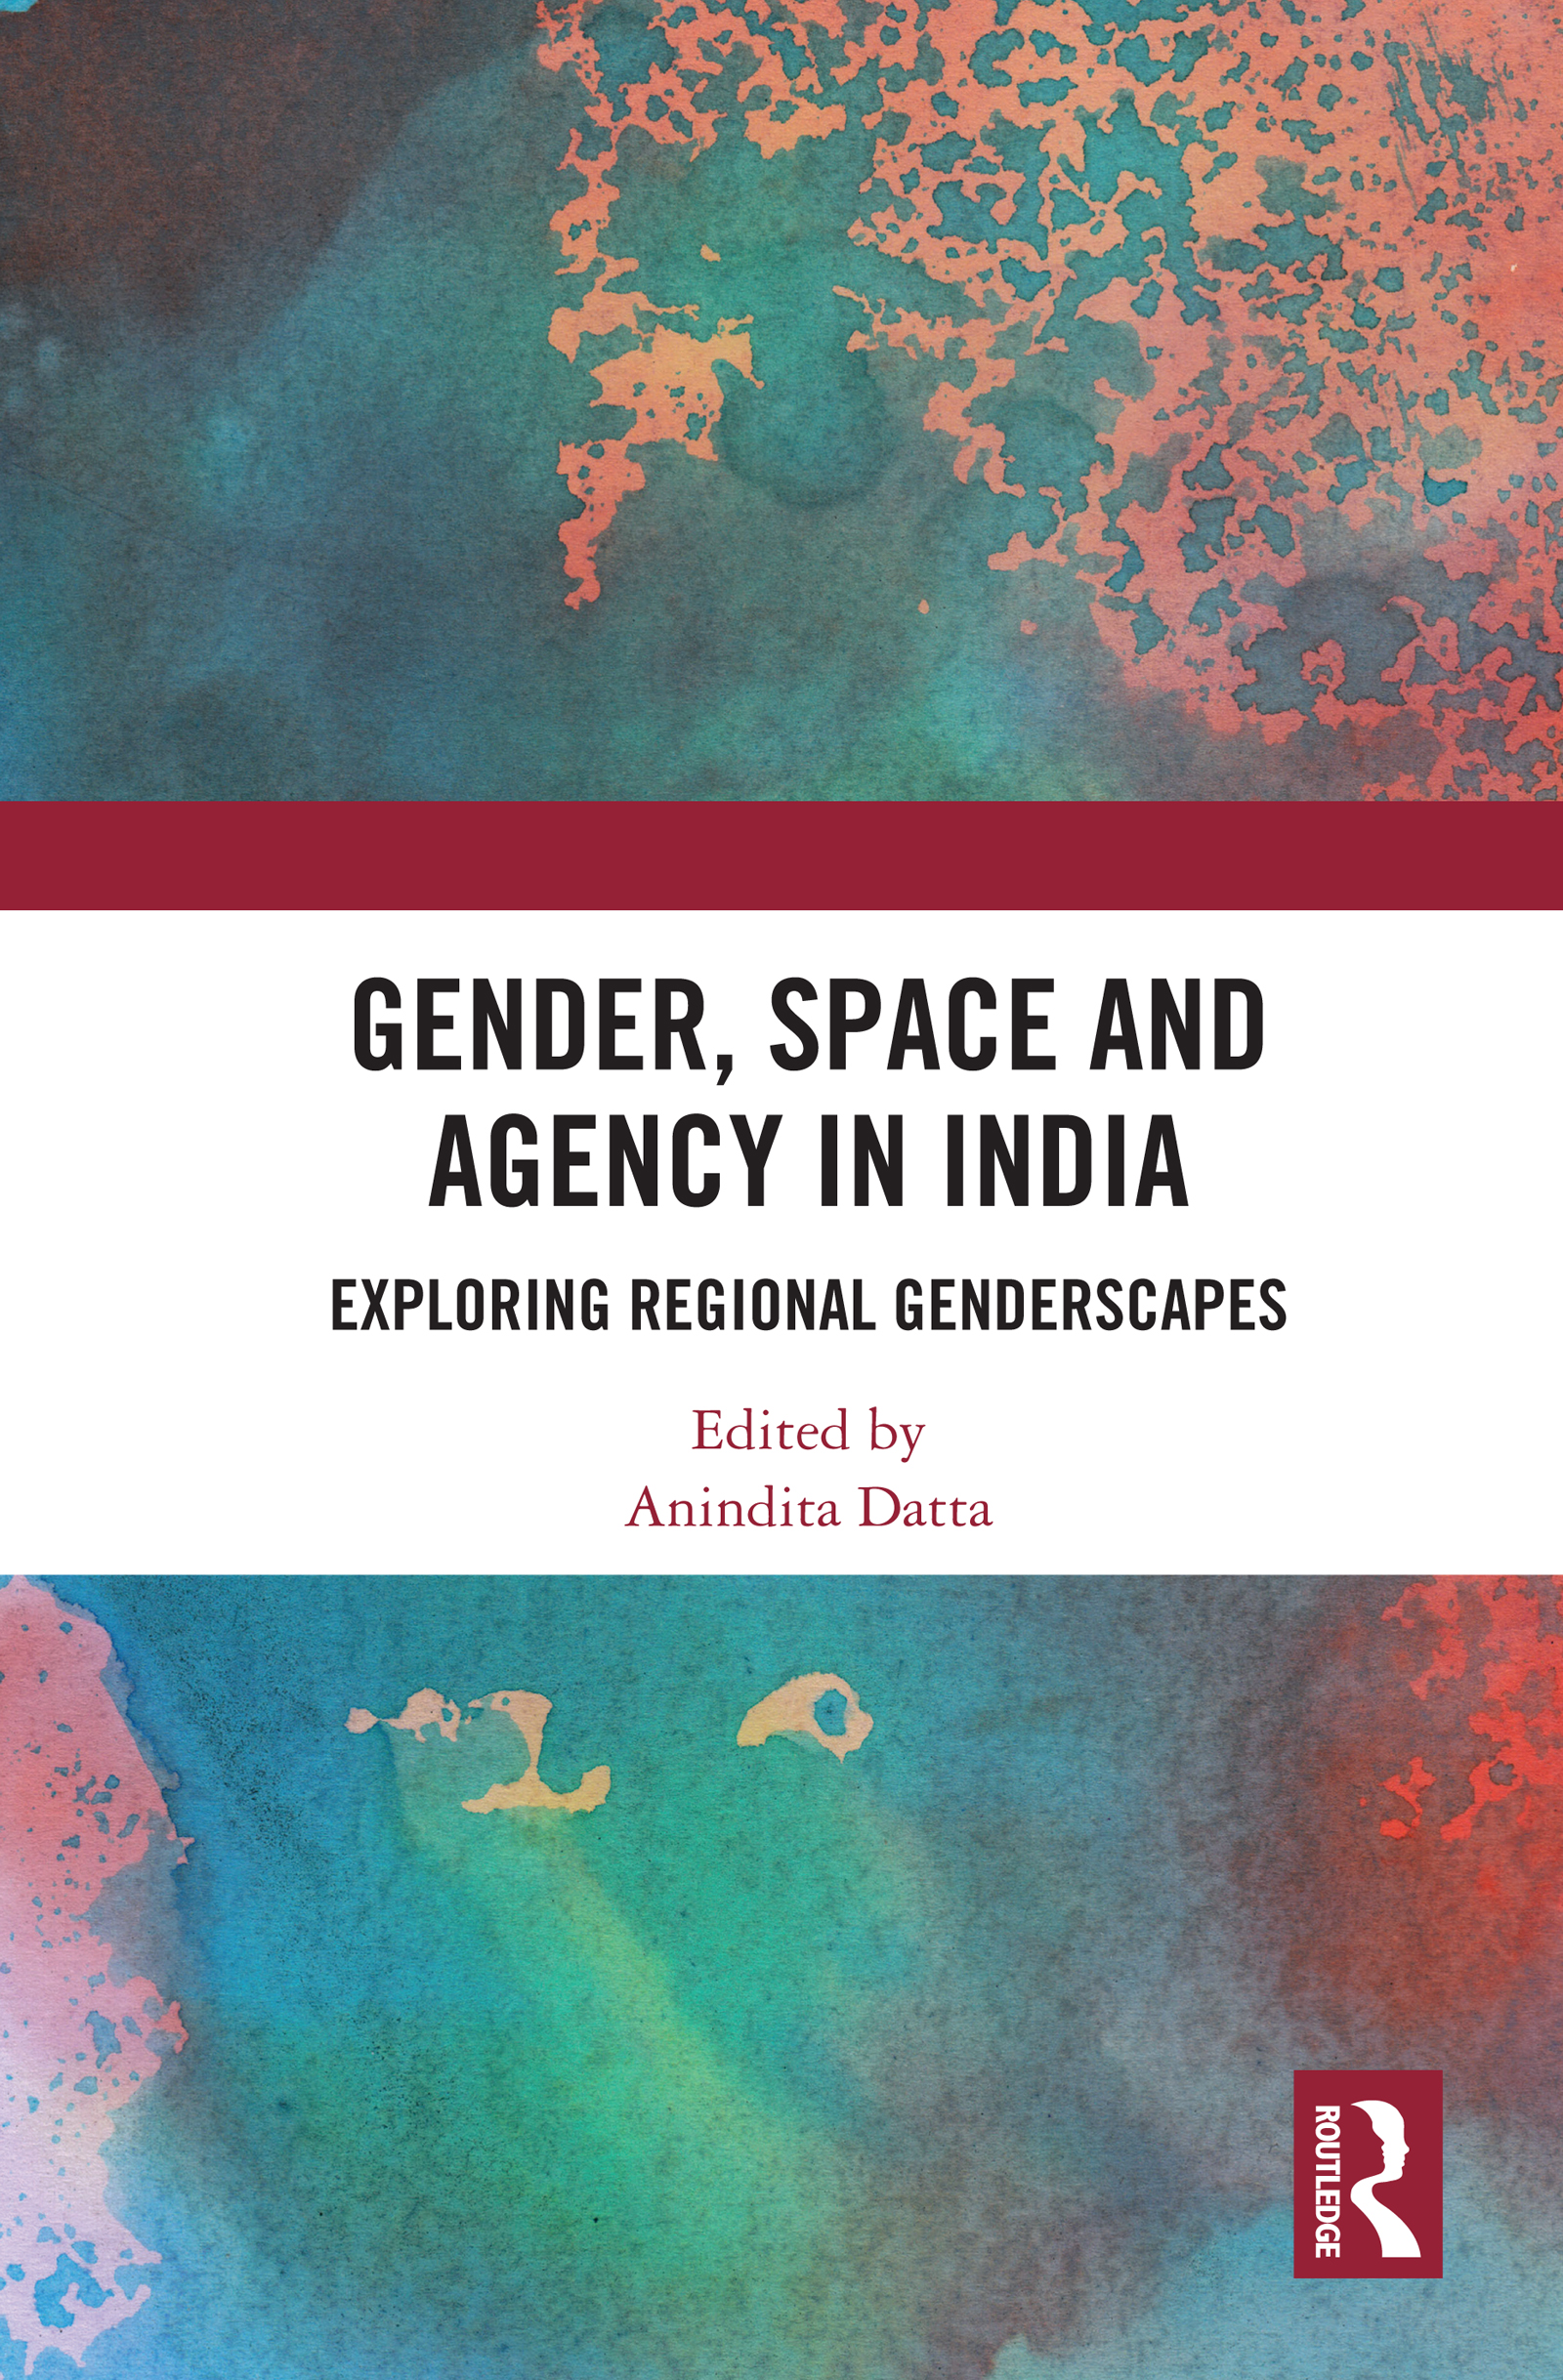 Gender, Space and Agency in India